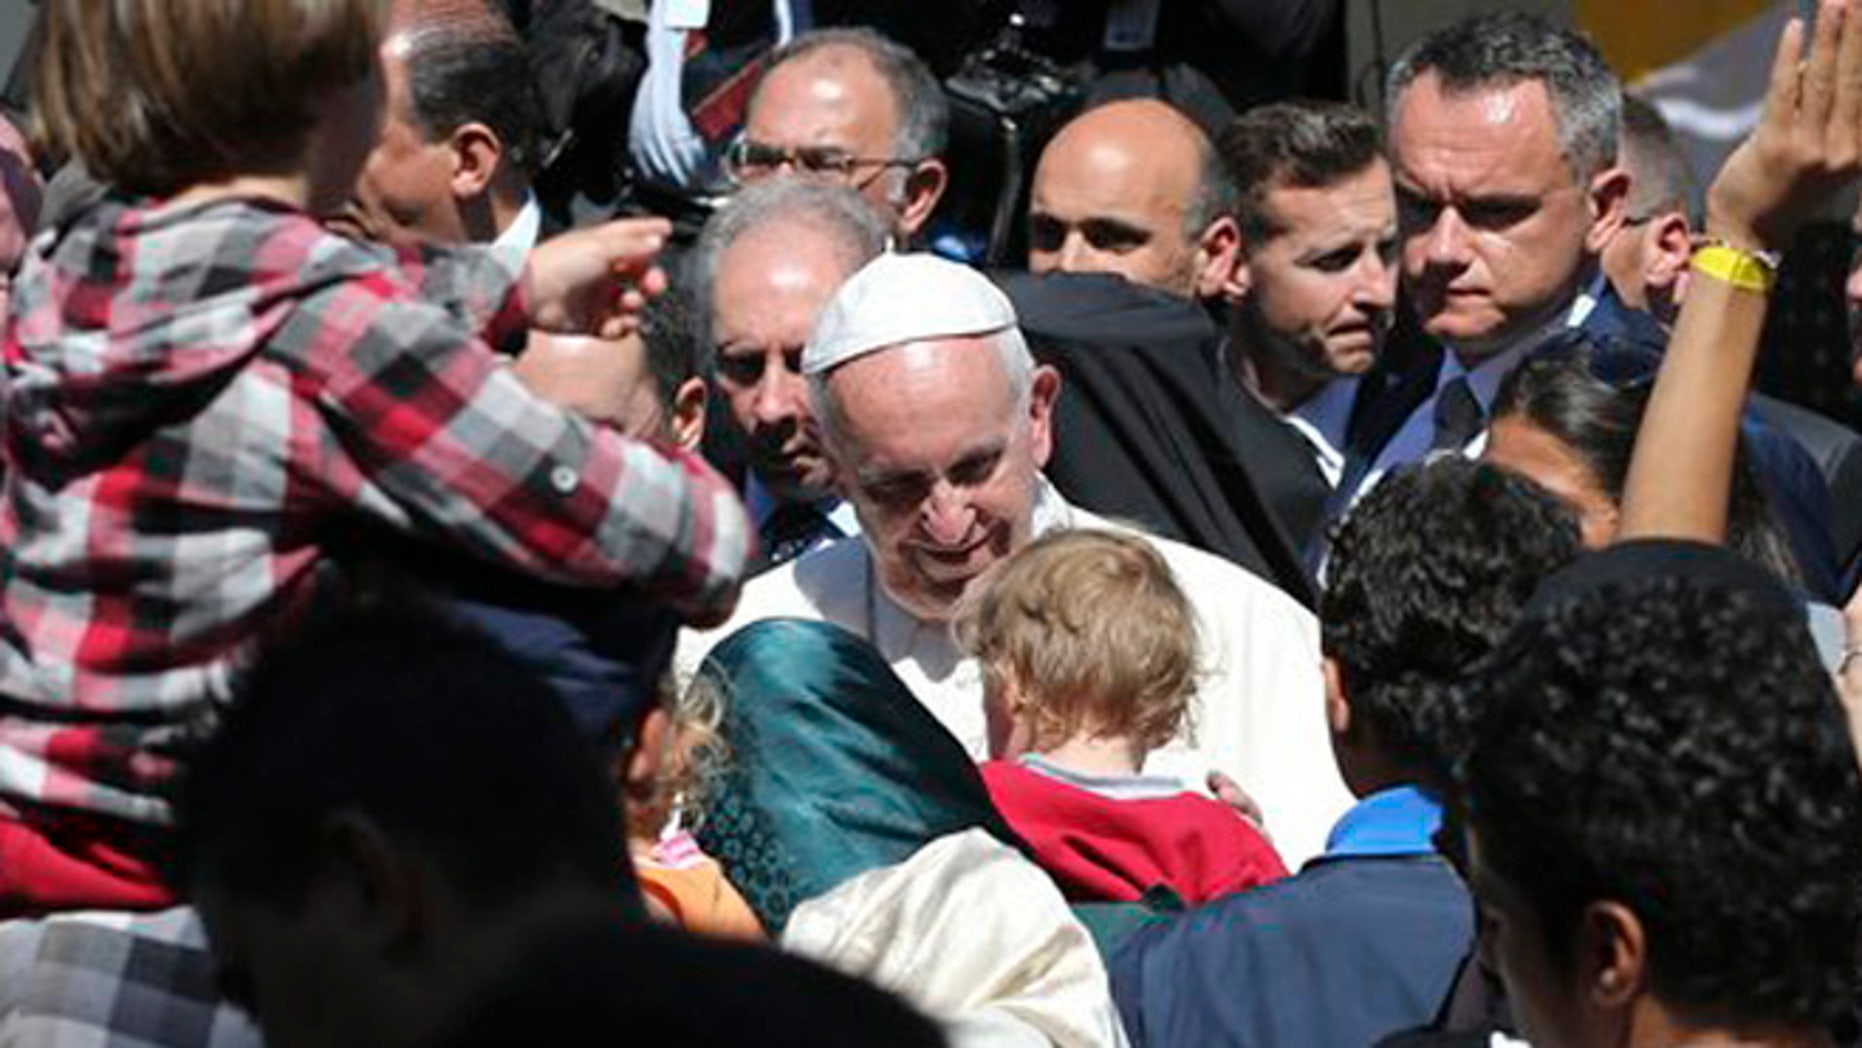 Pope Francis meets migrants at the Moria refugee camp on the Greek island of Lesbos,  Saturday April 16, 2016. Pope Francis travelled Saturday to Greece for a brief but provocative visit to meet with refugees at a detention center as the European Union implements a controversial plan to deport them back to Turkey. (AP Photo/Petros Giannakouris)